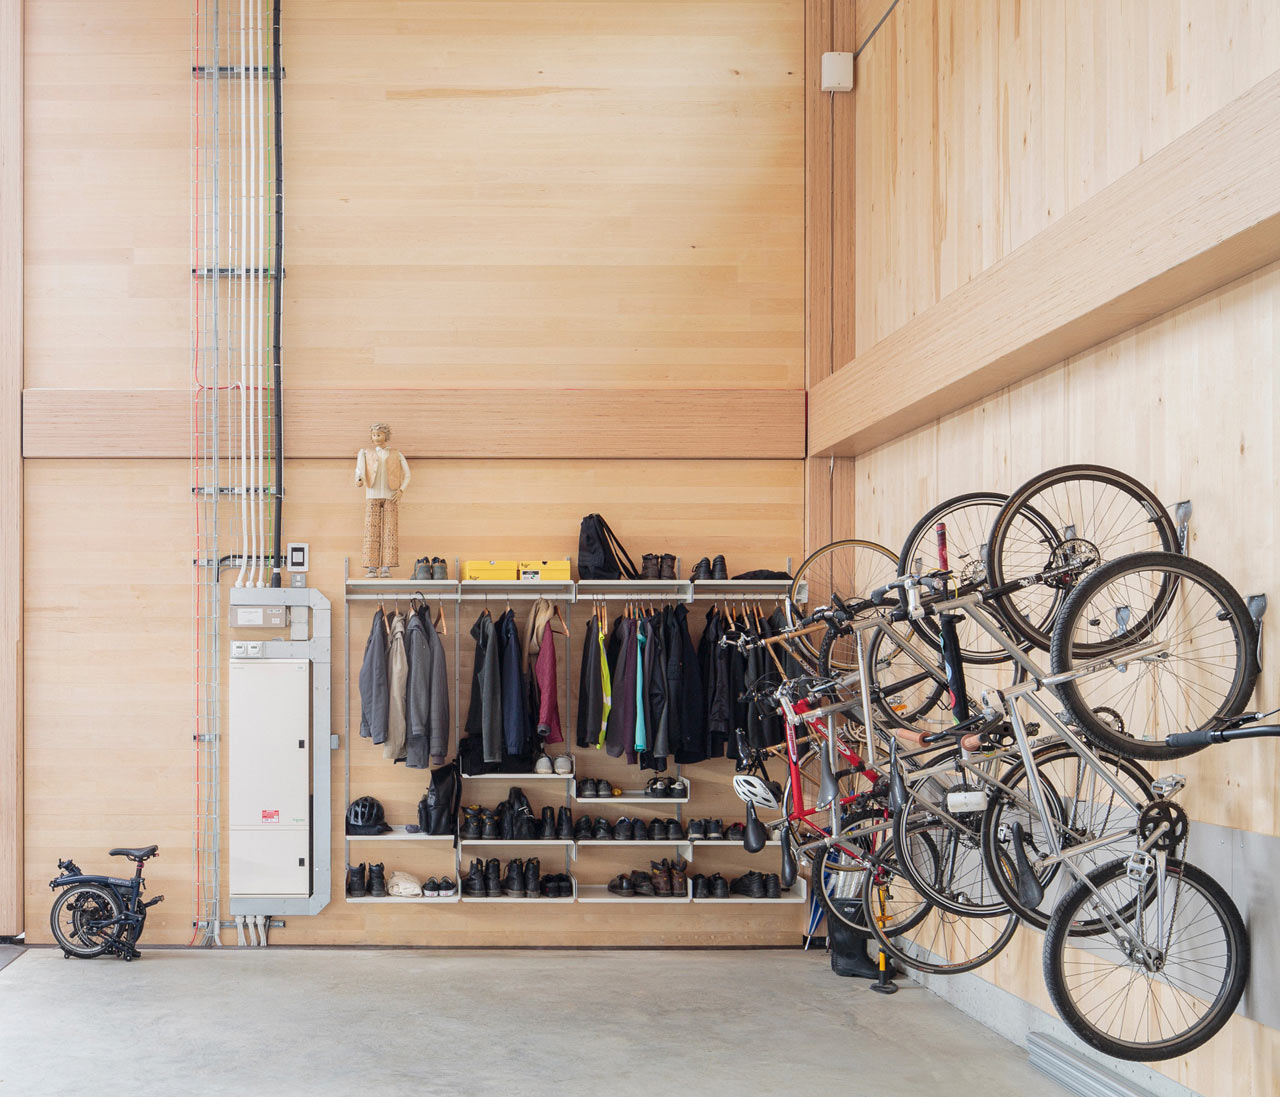 Vitsoe-Royal-Leamington-Spa-HQ-6